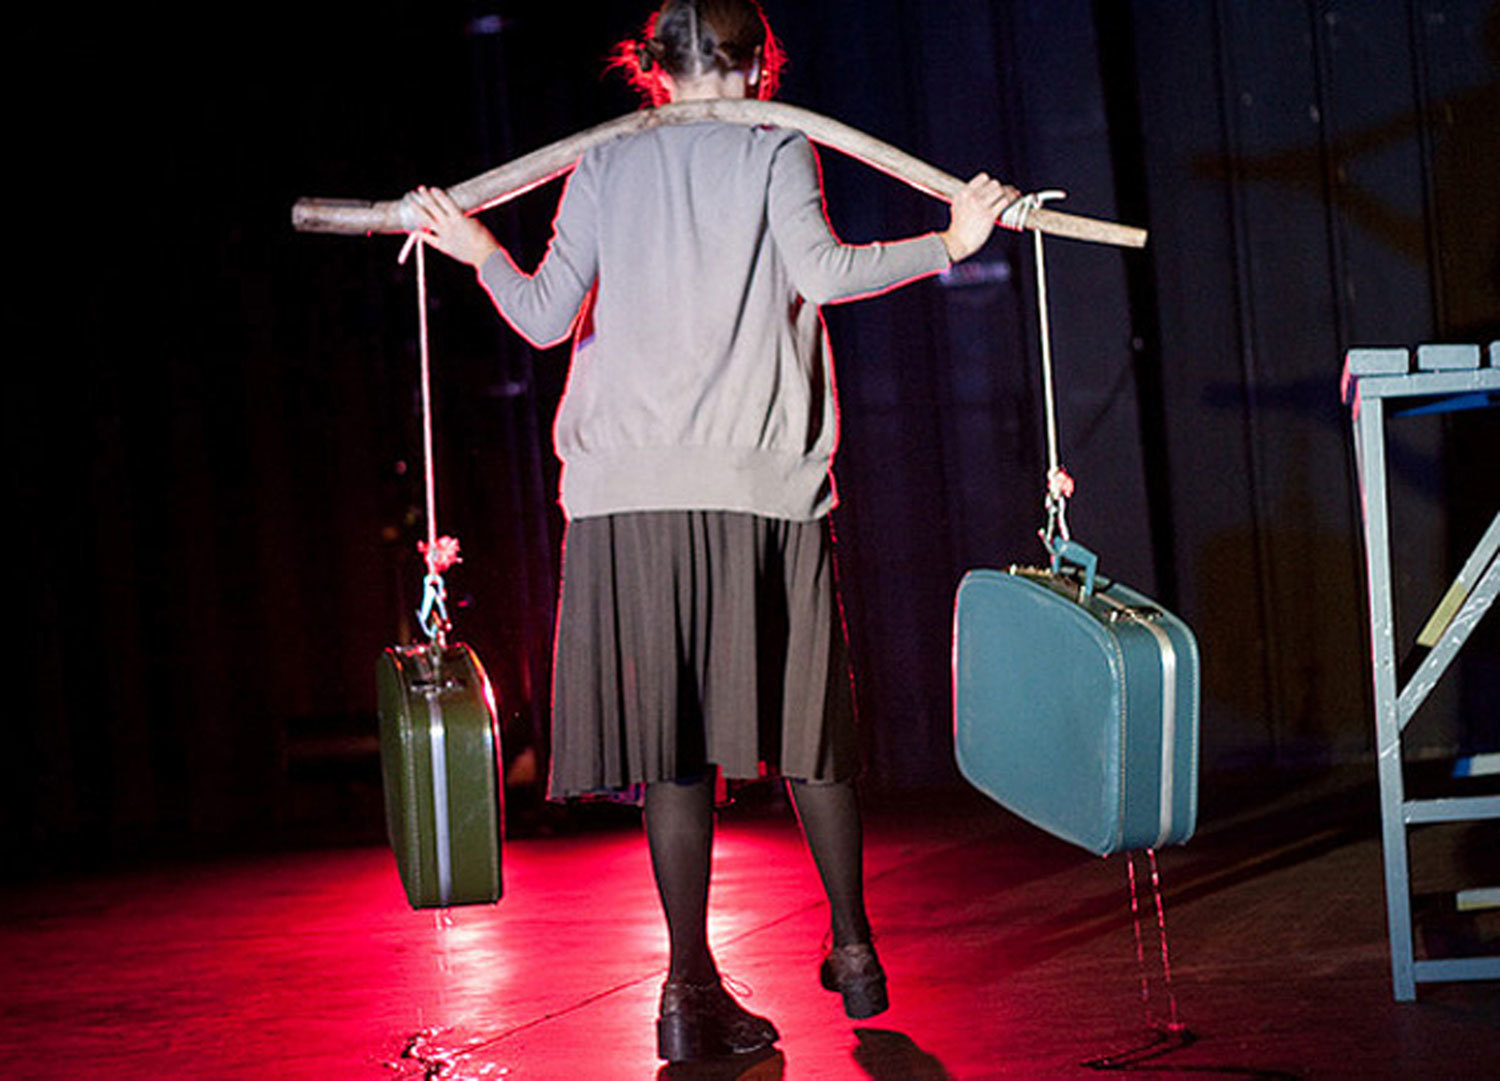 She's walking away with the yoke, water dripping from the cases